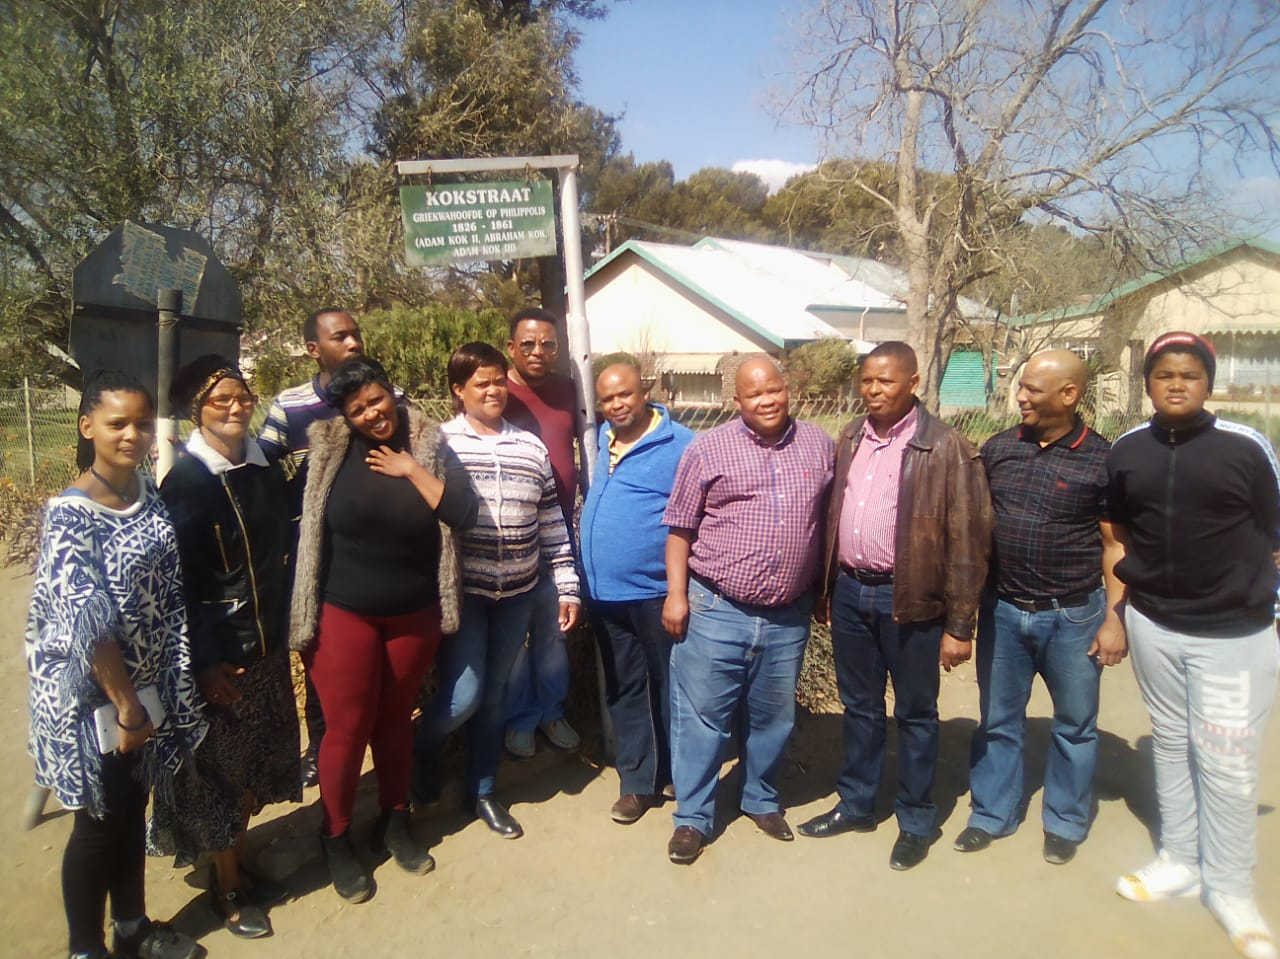 8. XHARIEP STEERING COMMITTEE MEMBERS